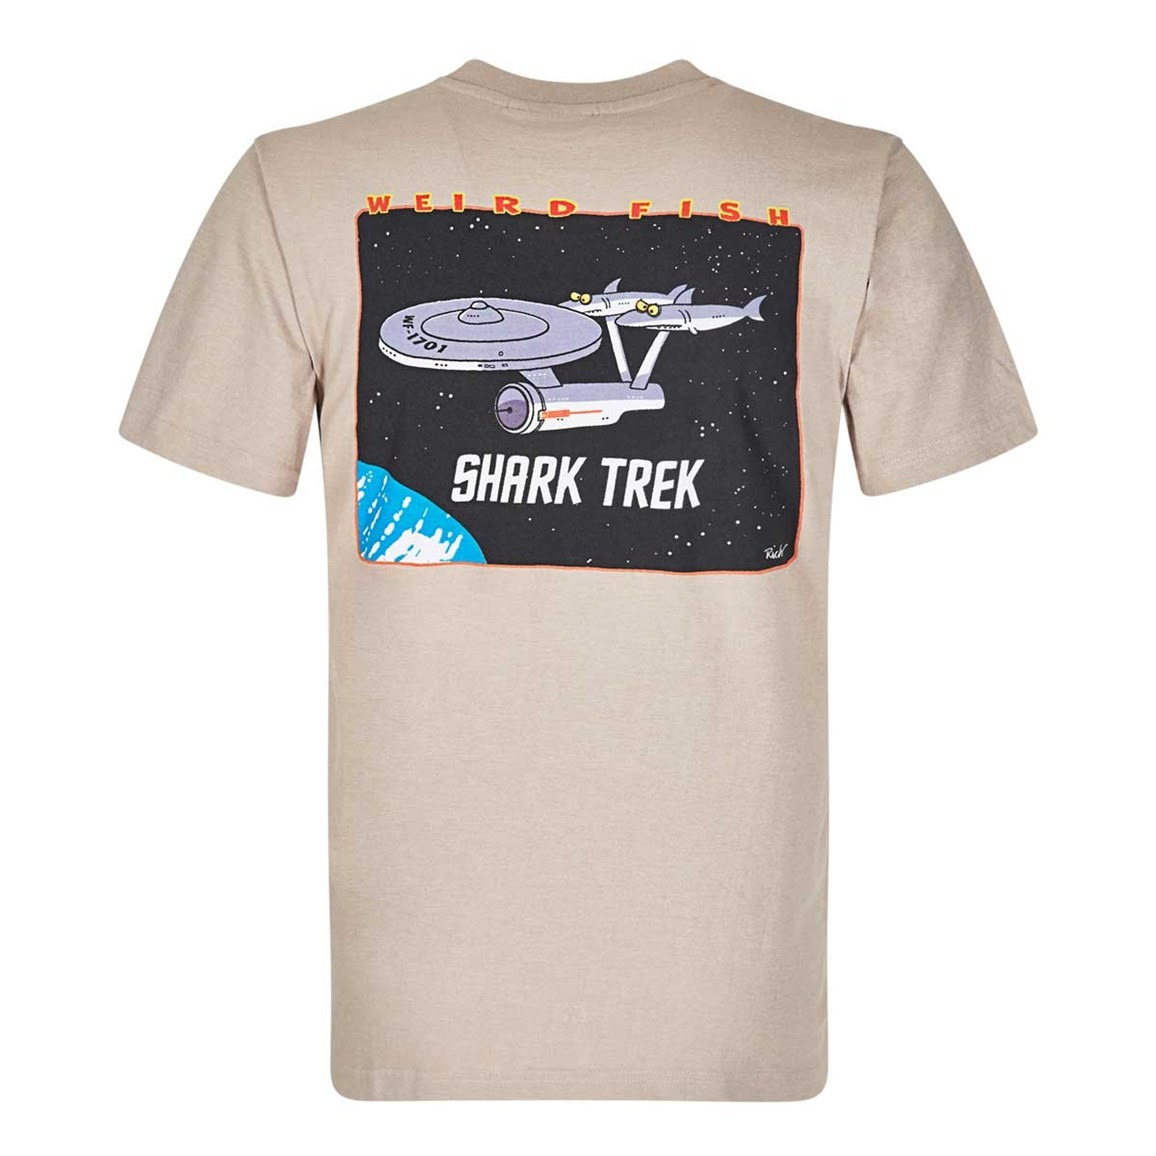 Image of Weird Fish Shark Trek Printed Artist T-Shirt String Size 5XL